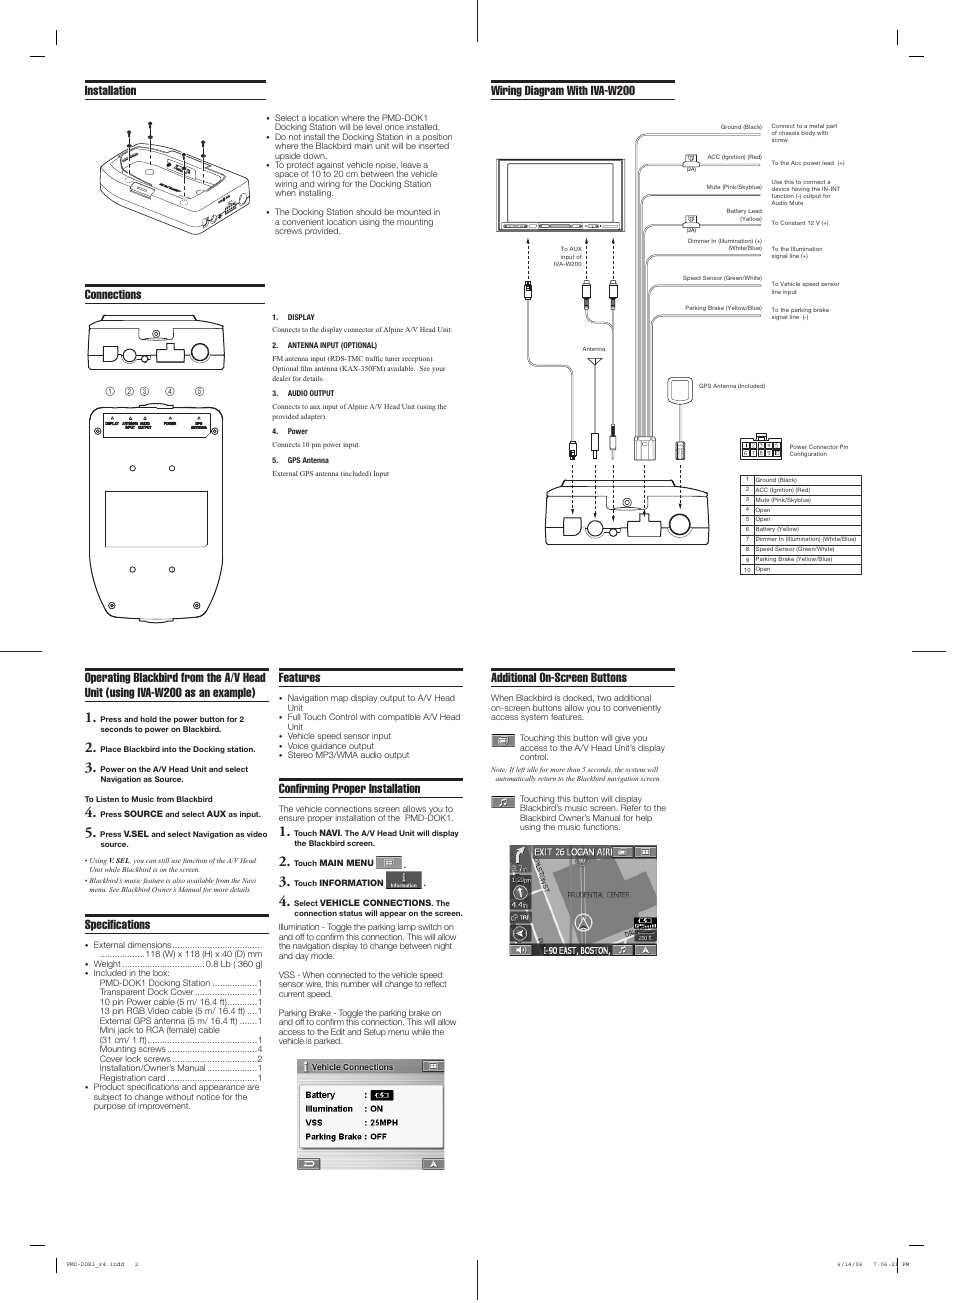 W200 Wiring Diagram Building 1977 Dodge Connections With Iva Specifi Cations Alpine Home Electrical Diagrams